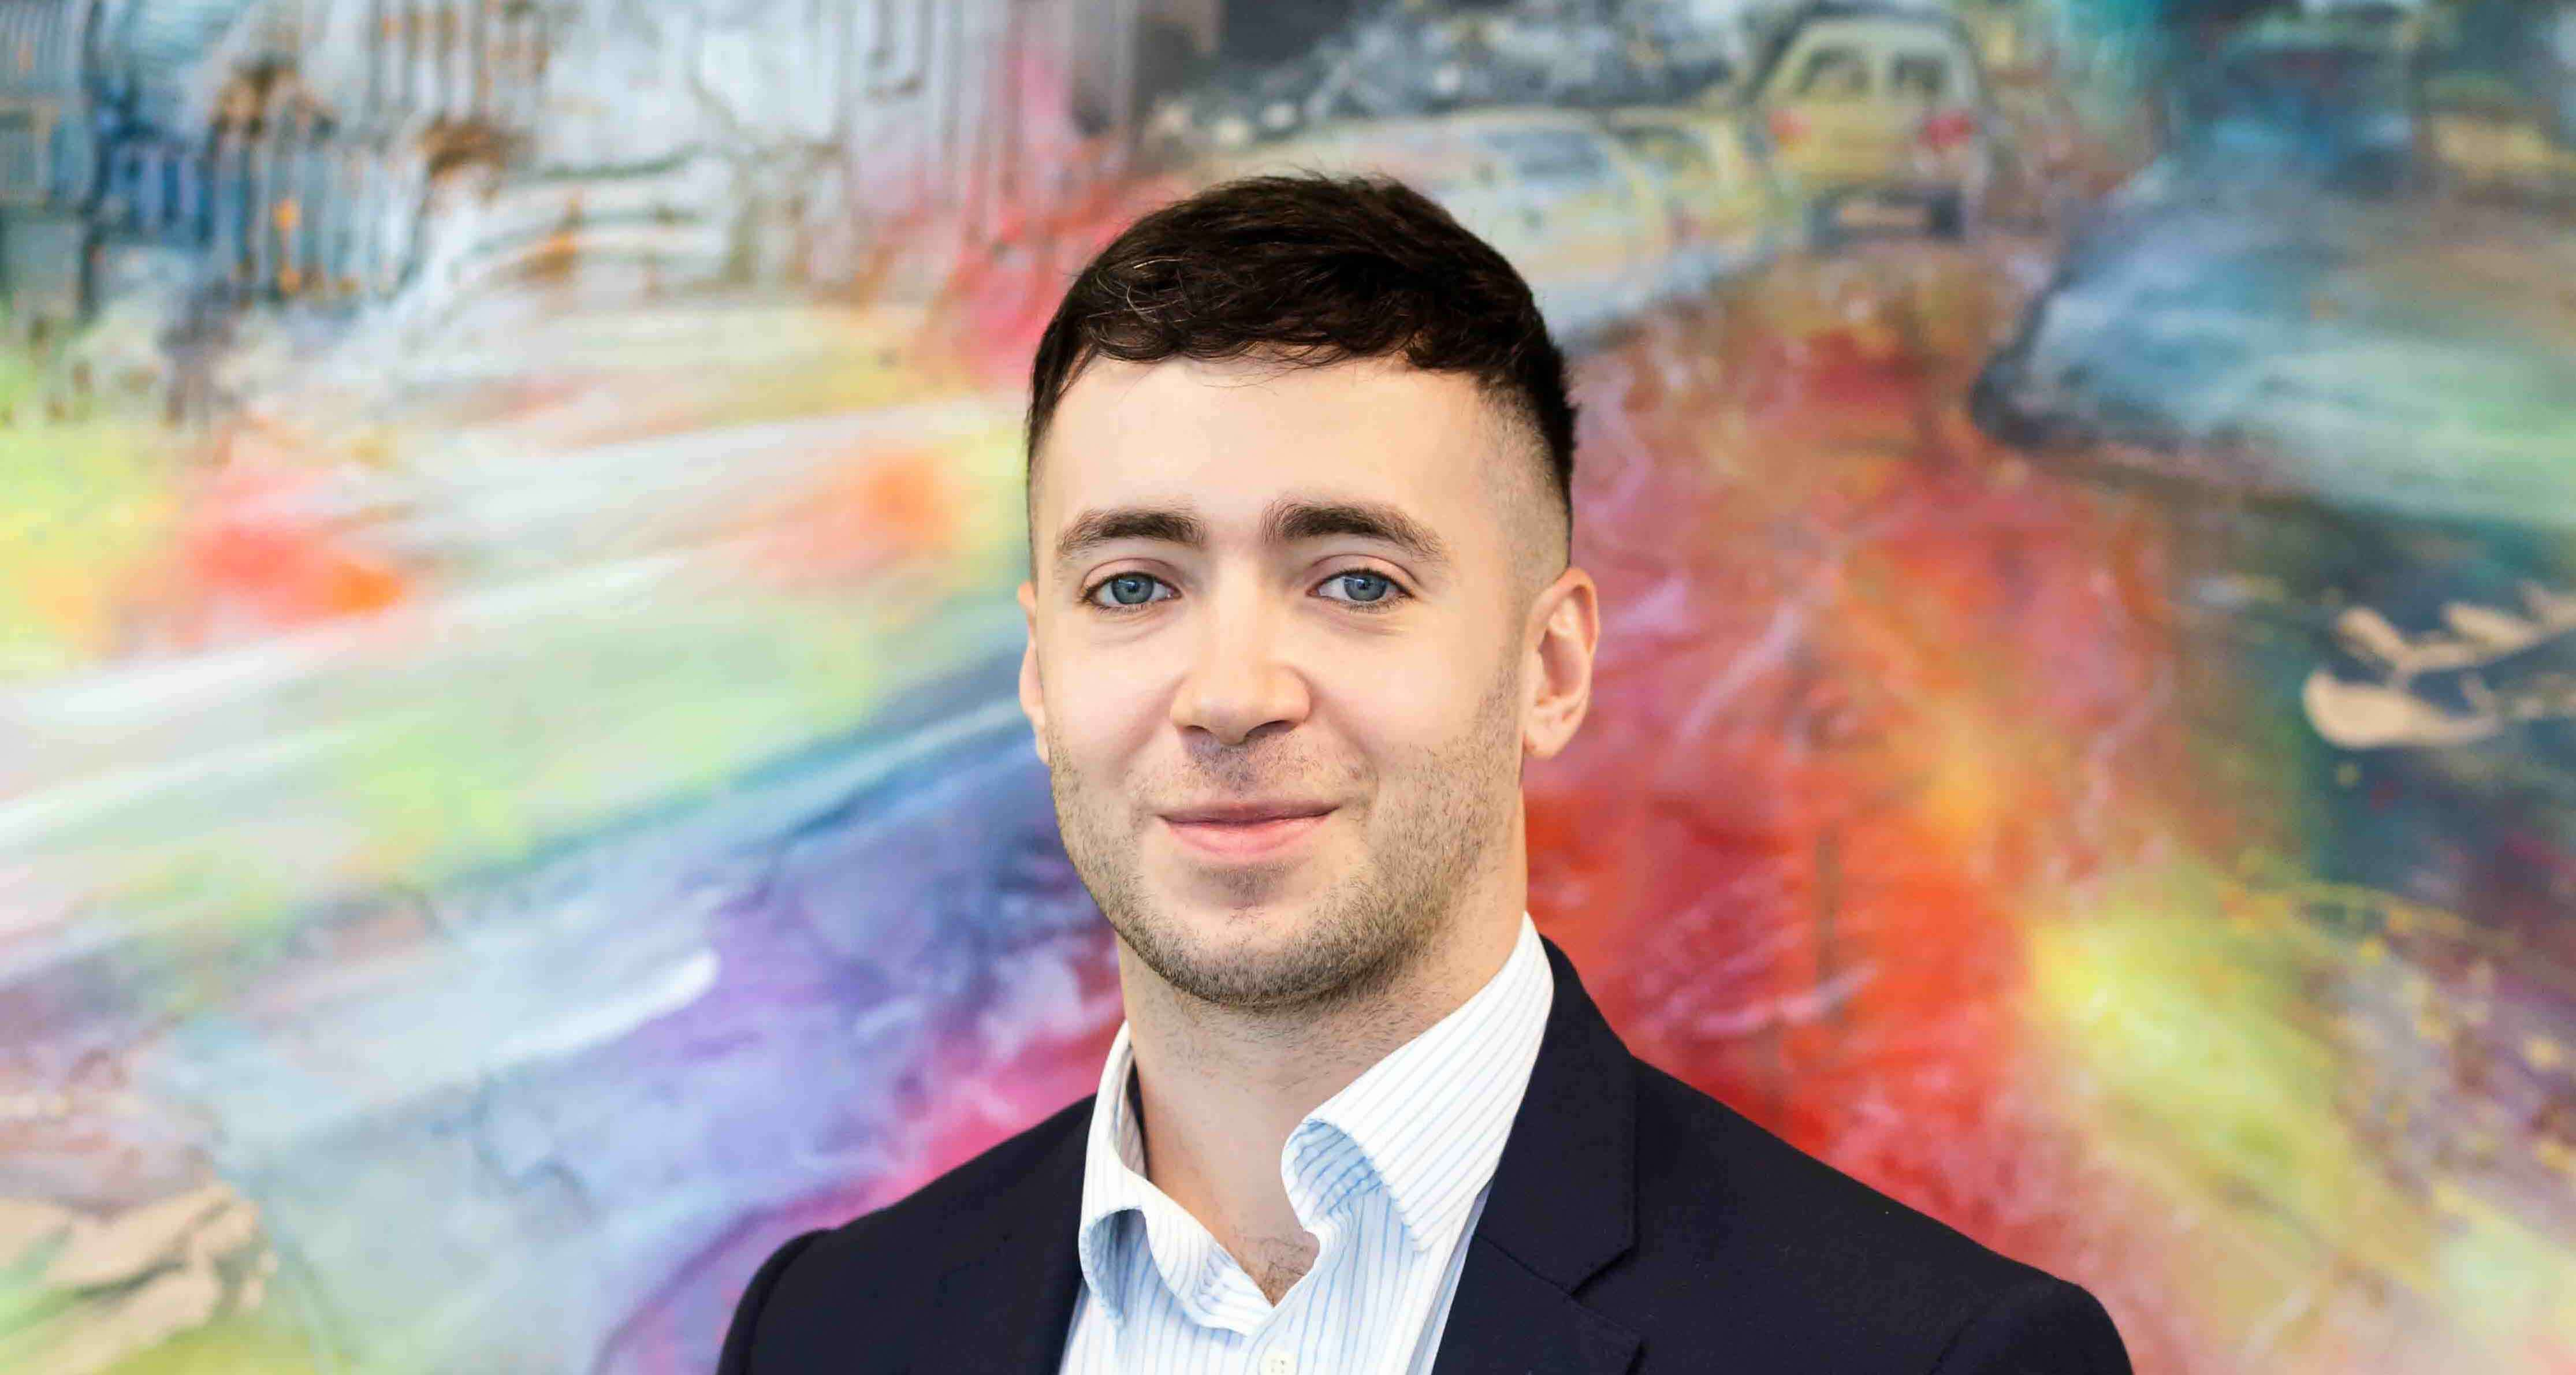 Image of Daniel Beurthe, Senior Account Executive at Peregrine Communications